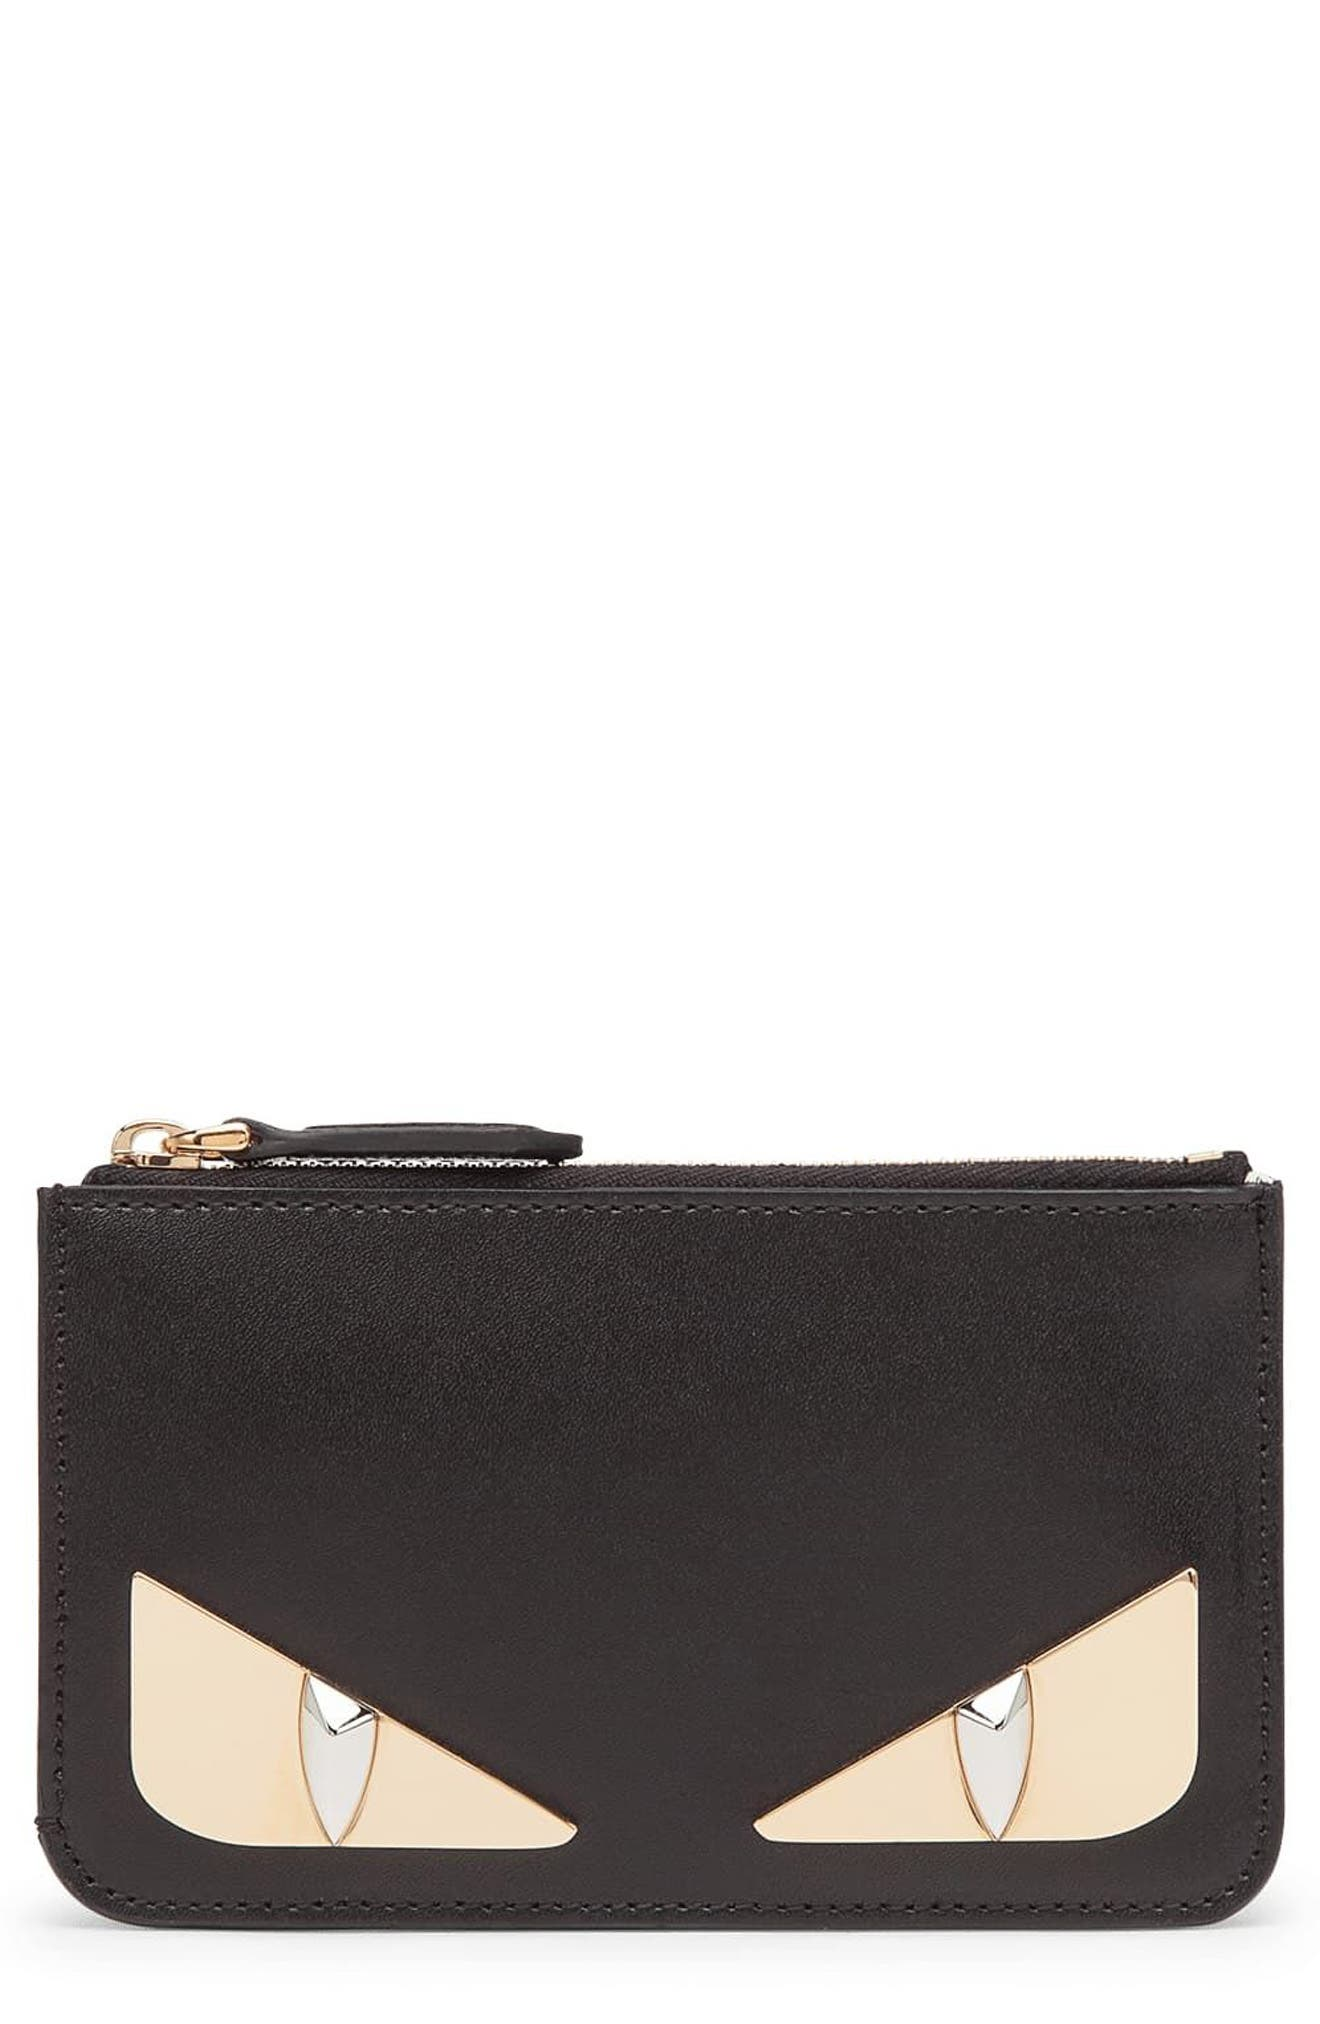 Fendi Monster Leather Key Pouch